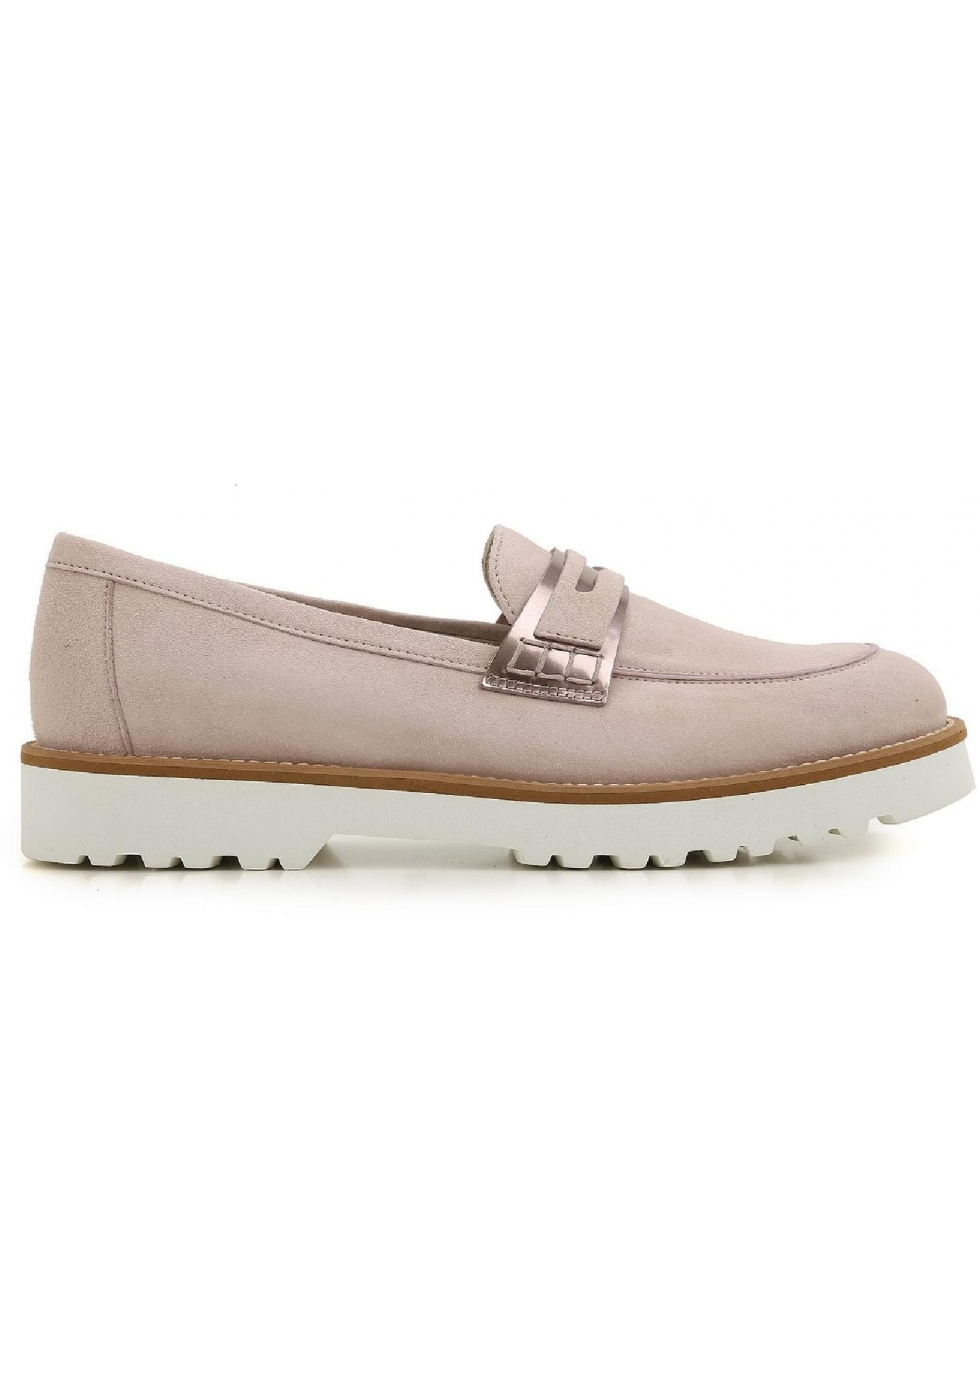 343cd554b6 Hogan women's loafers shoes in pink suede leather - Italian Boutique